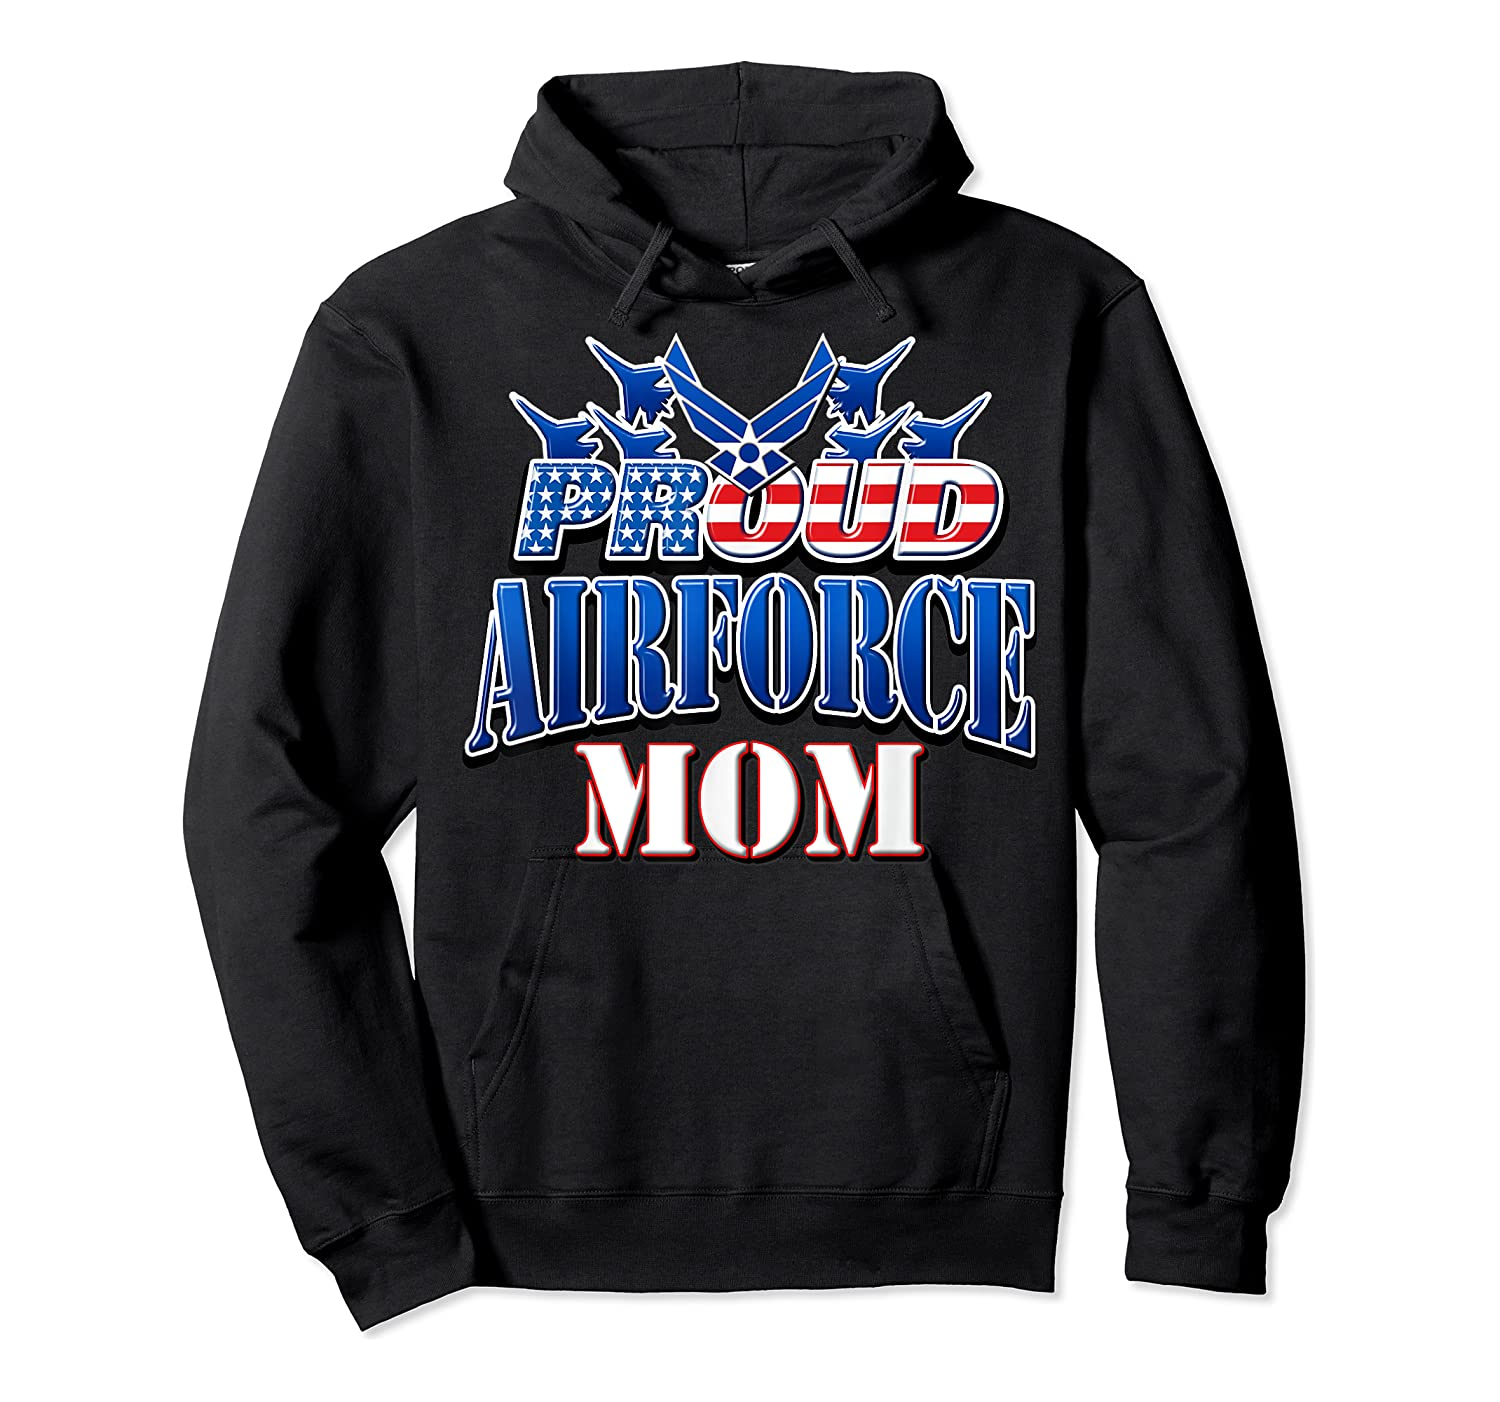 Proud Air Force Mom Shirt Mothers Day Patriotic Usa Military Unisex Pullover Hoodie